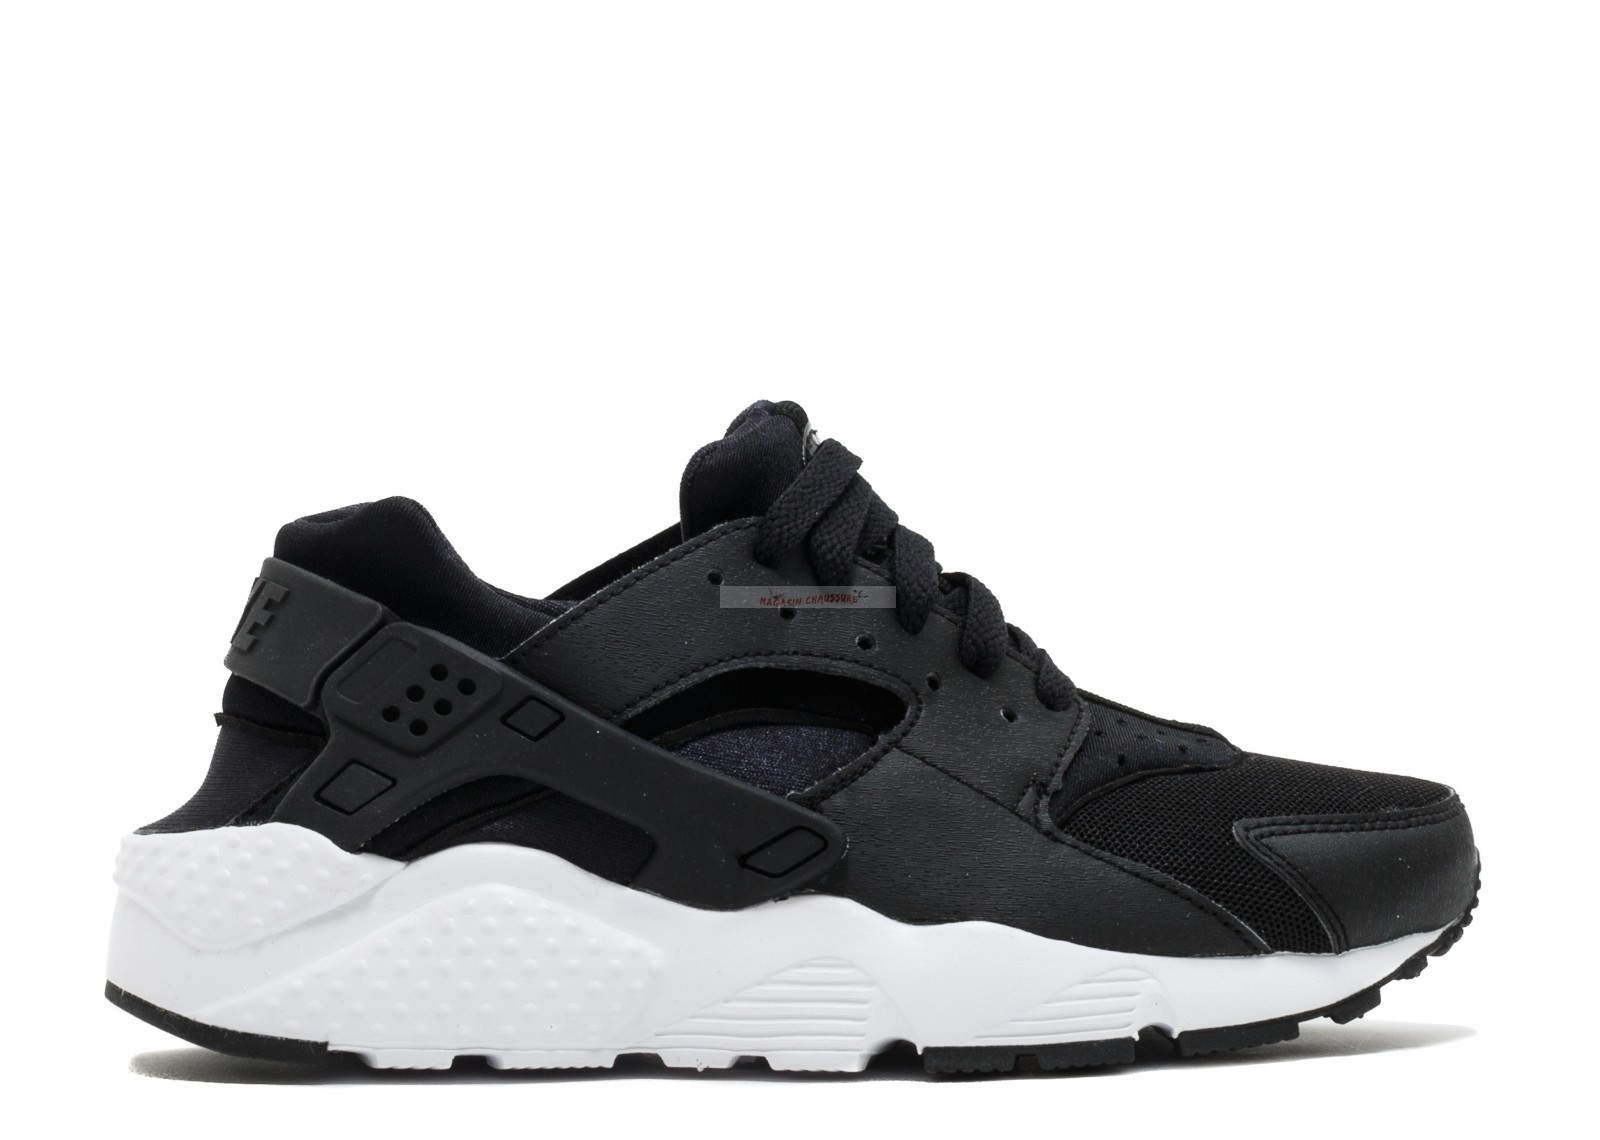 Nike Air Huarache Run Gs Noir Blanc (654275-011) Chaussure de Basket